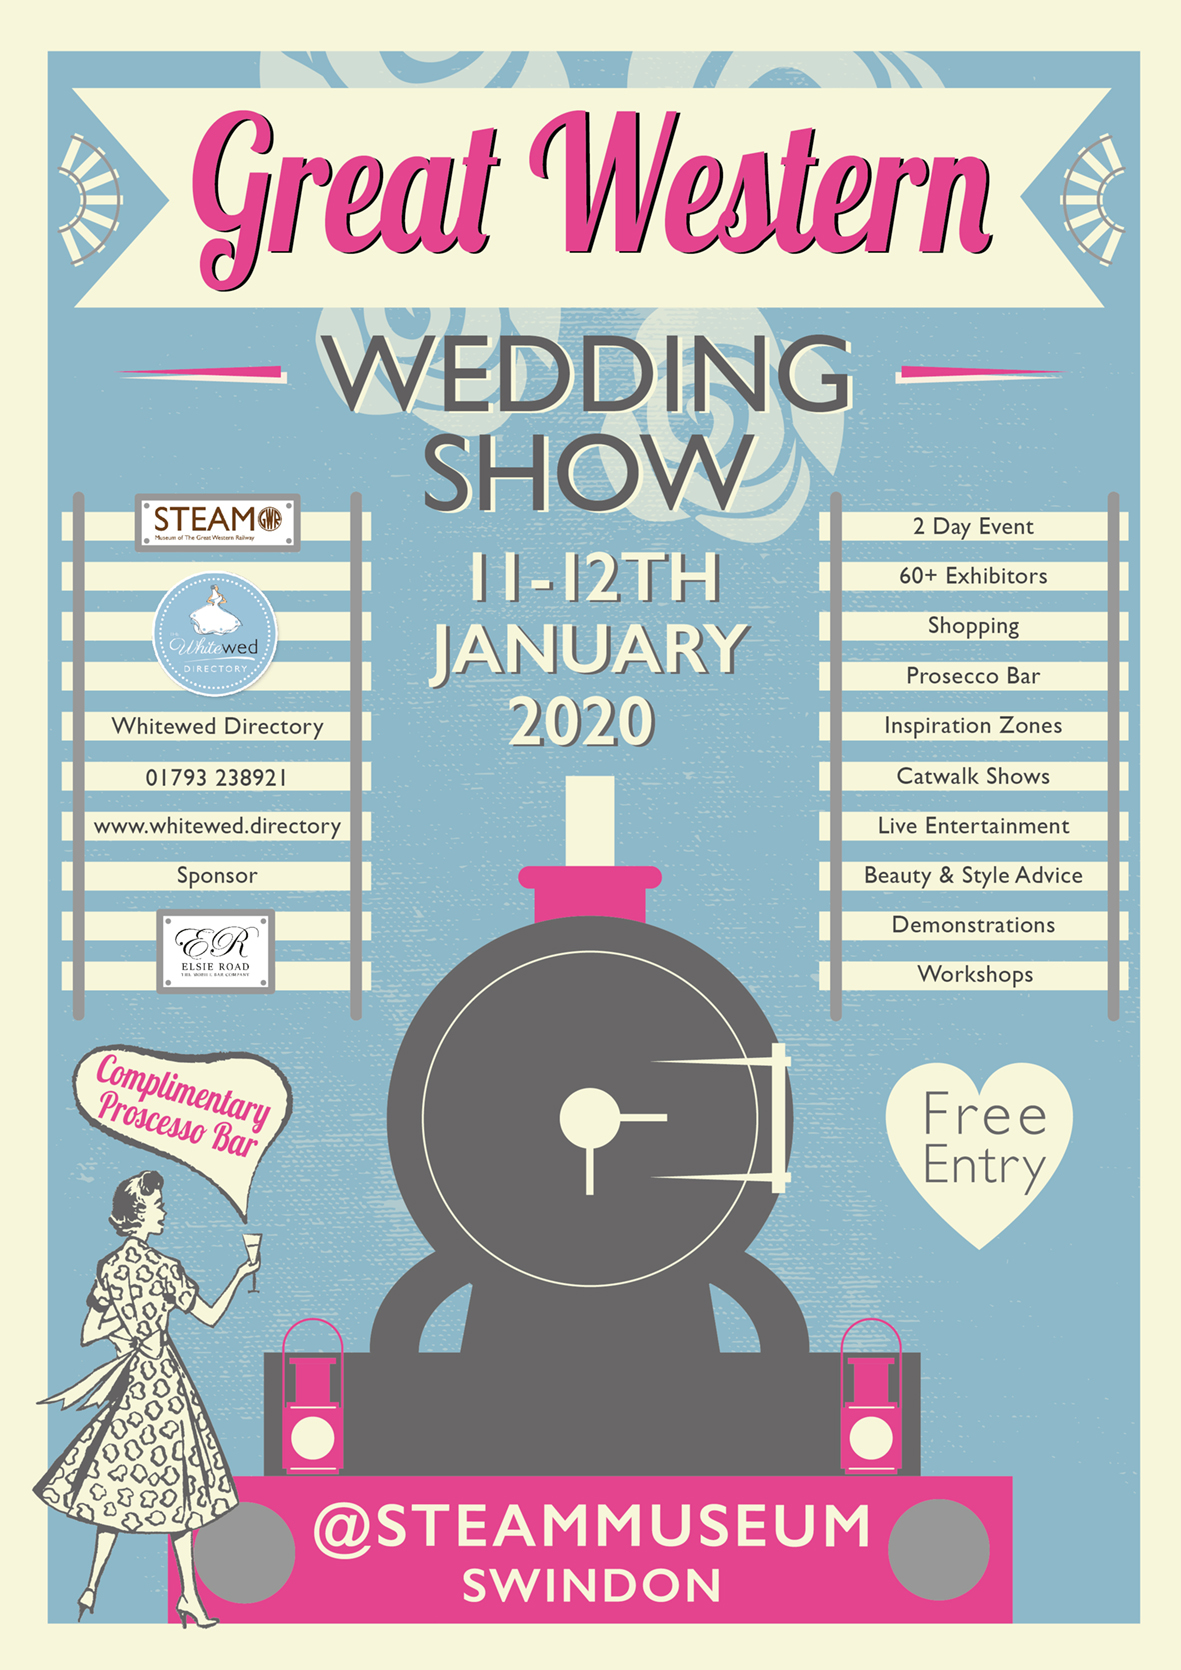 The Great Western Wedding Show at STEAM